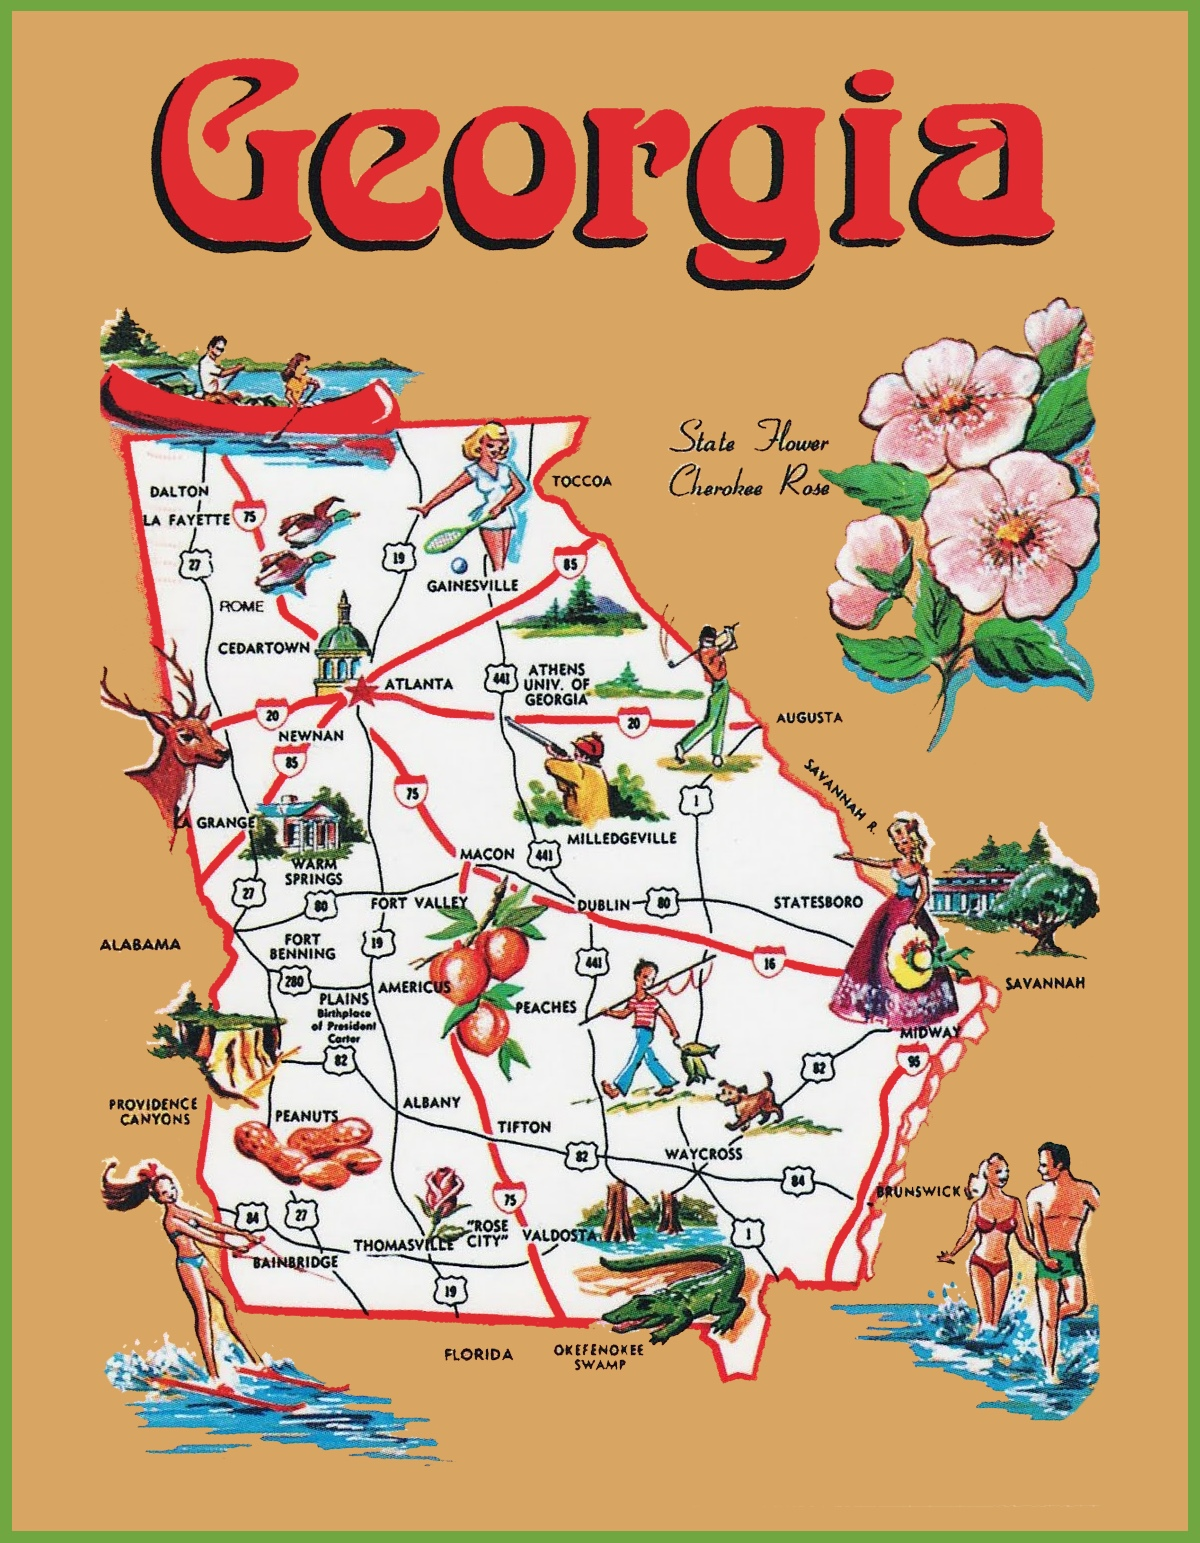 Georgia State Maps | USA | Maps of Georgia (GA)